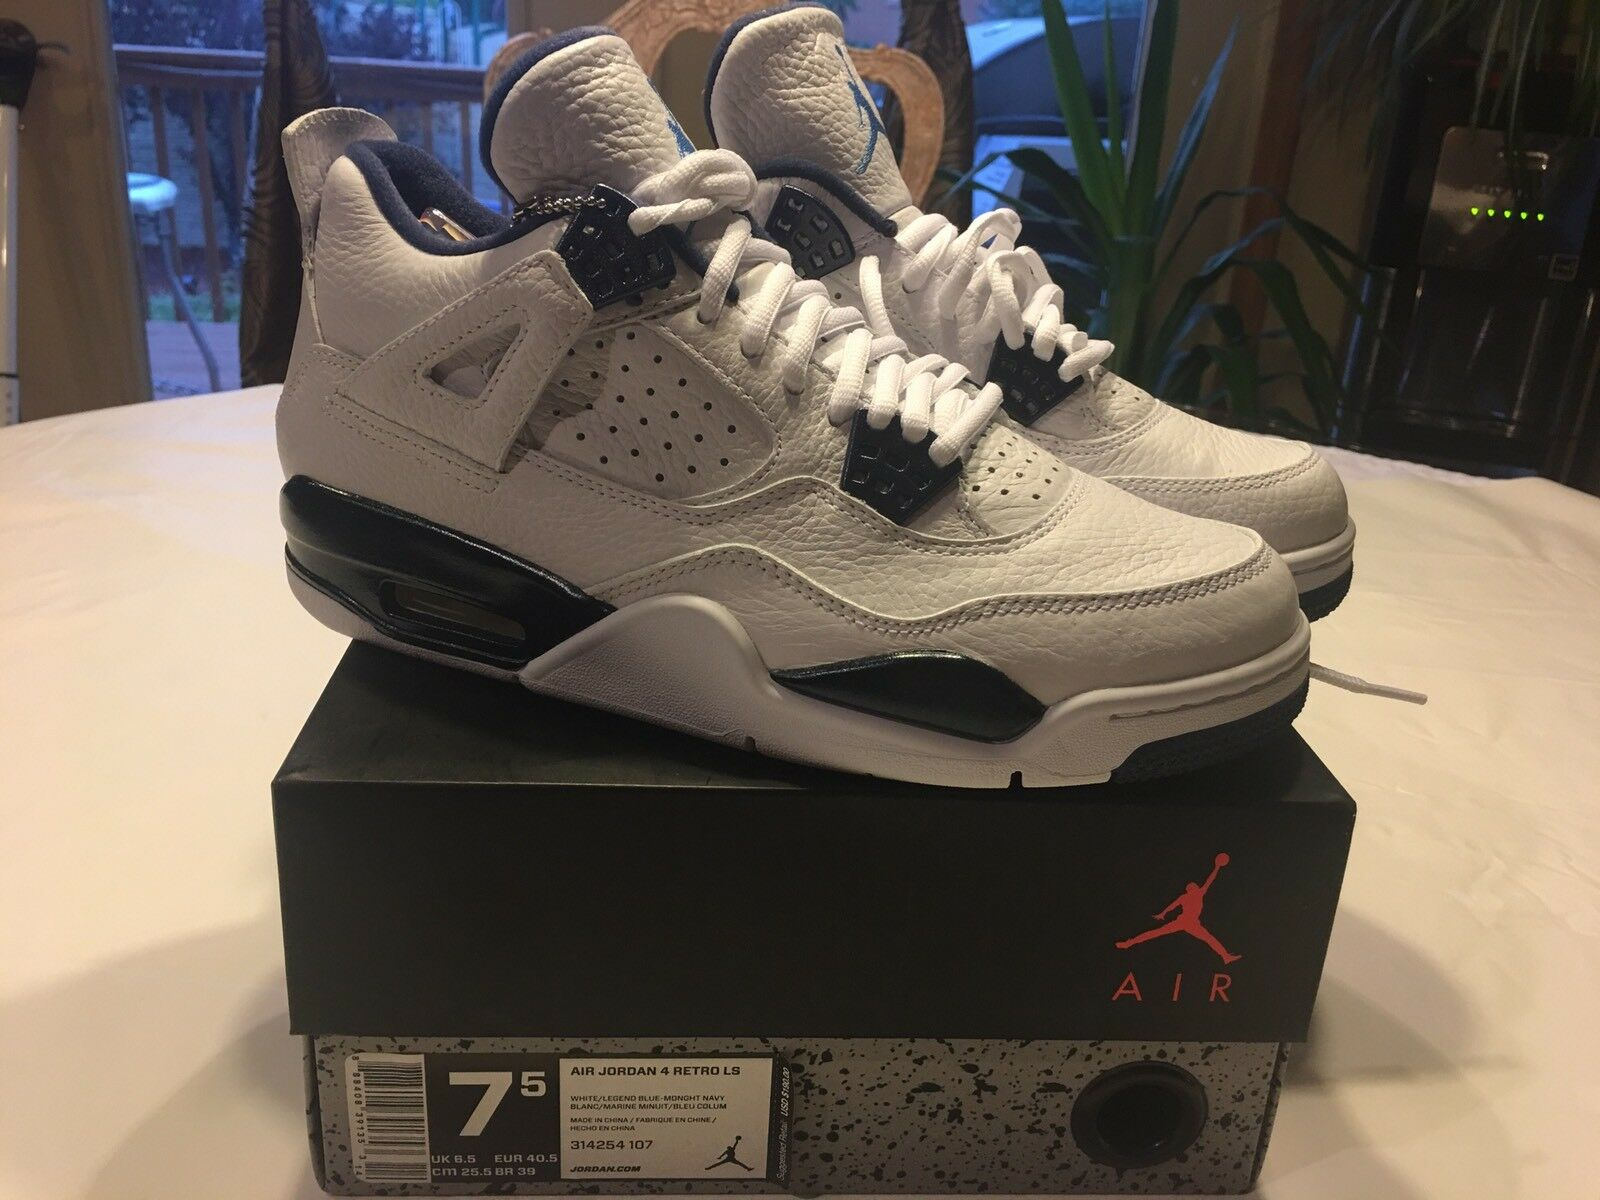 Air Jordan 4 Retro Ls White Navy Blue Comfortable The most popular shoes for men and women